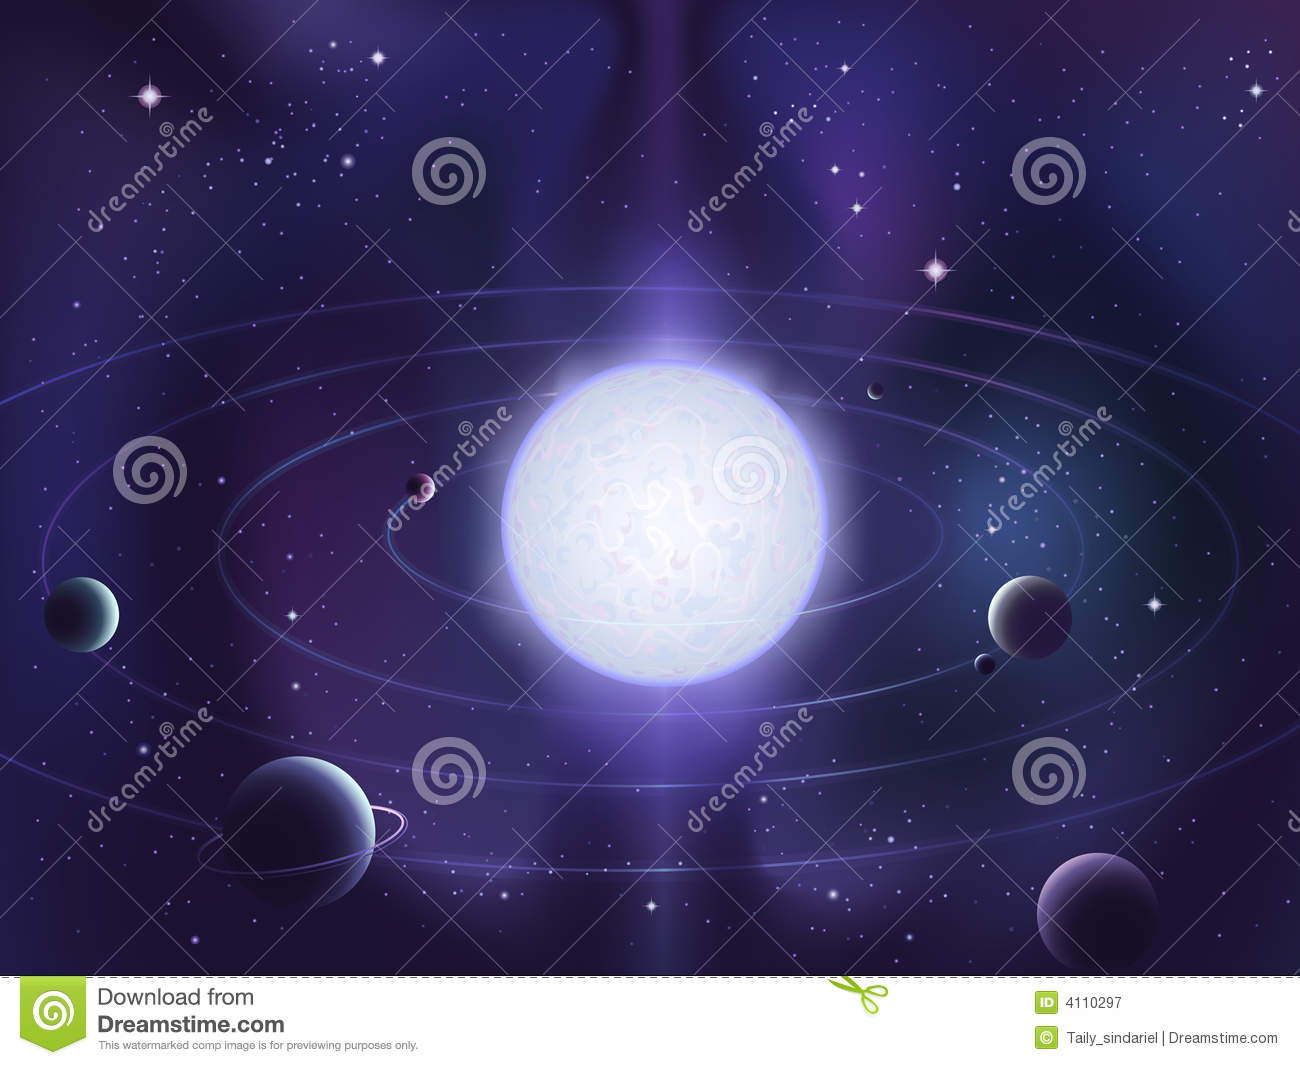 Maoxiu besides Living Space With Earth From Moon Mural Wallpaper together with Hqdefault also C G Horsetailsunset Blog likewise Pla s Orbiting Around Bright White Star. on celestial moon and stars